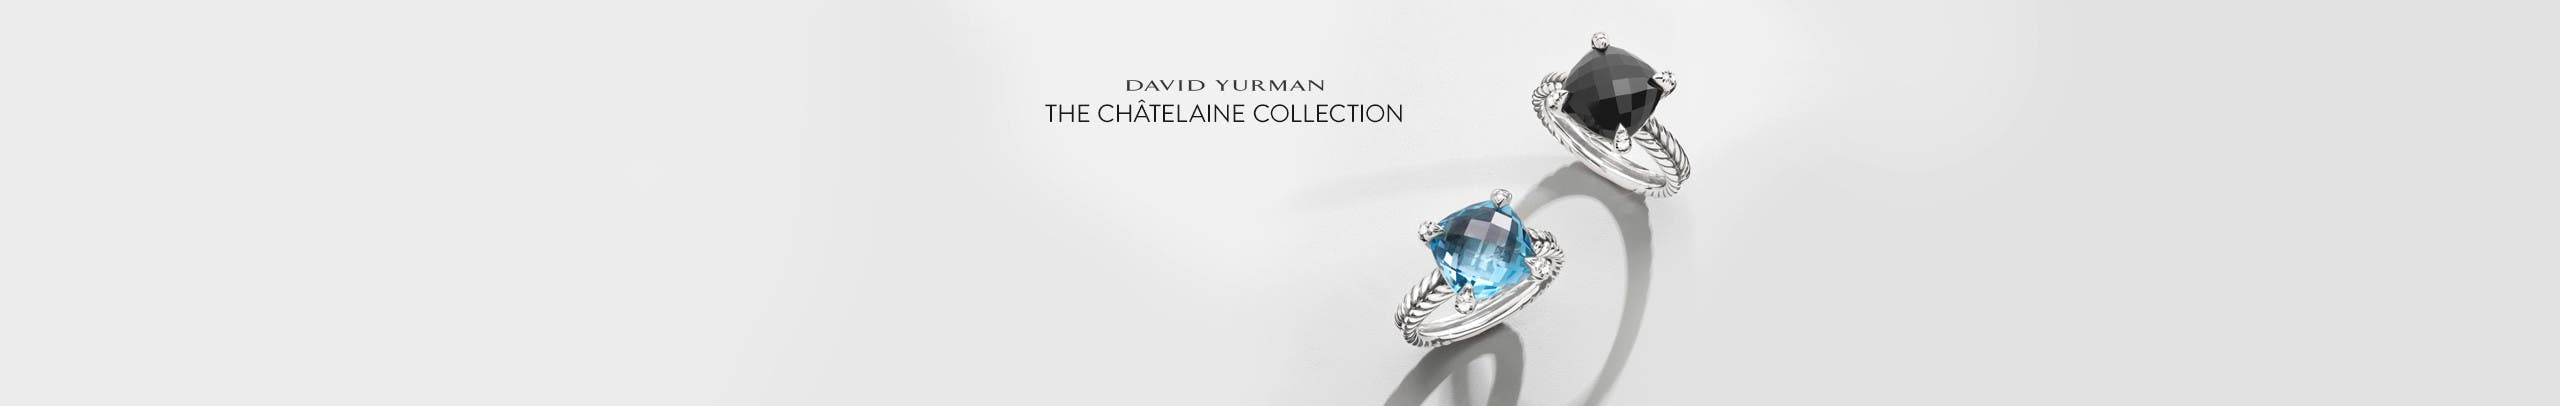 The Châtelaine Collection.